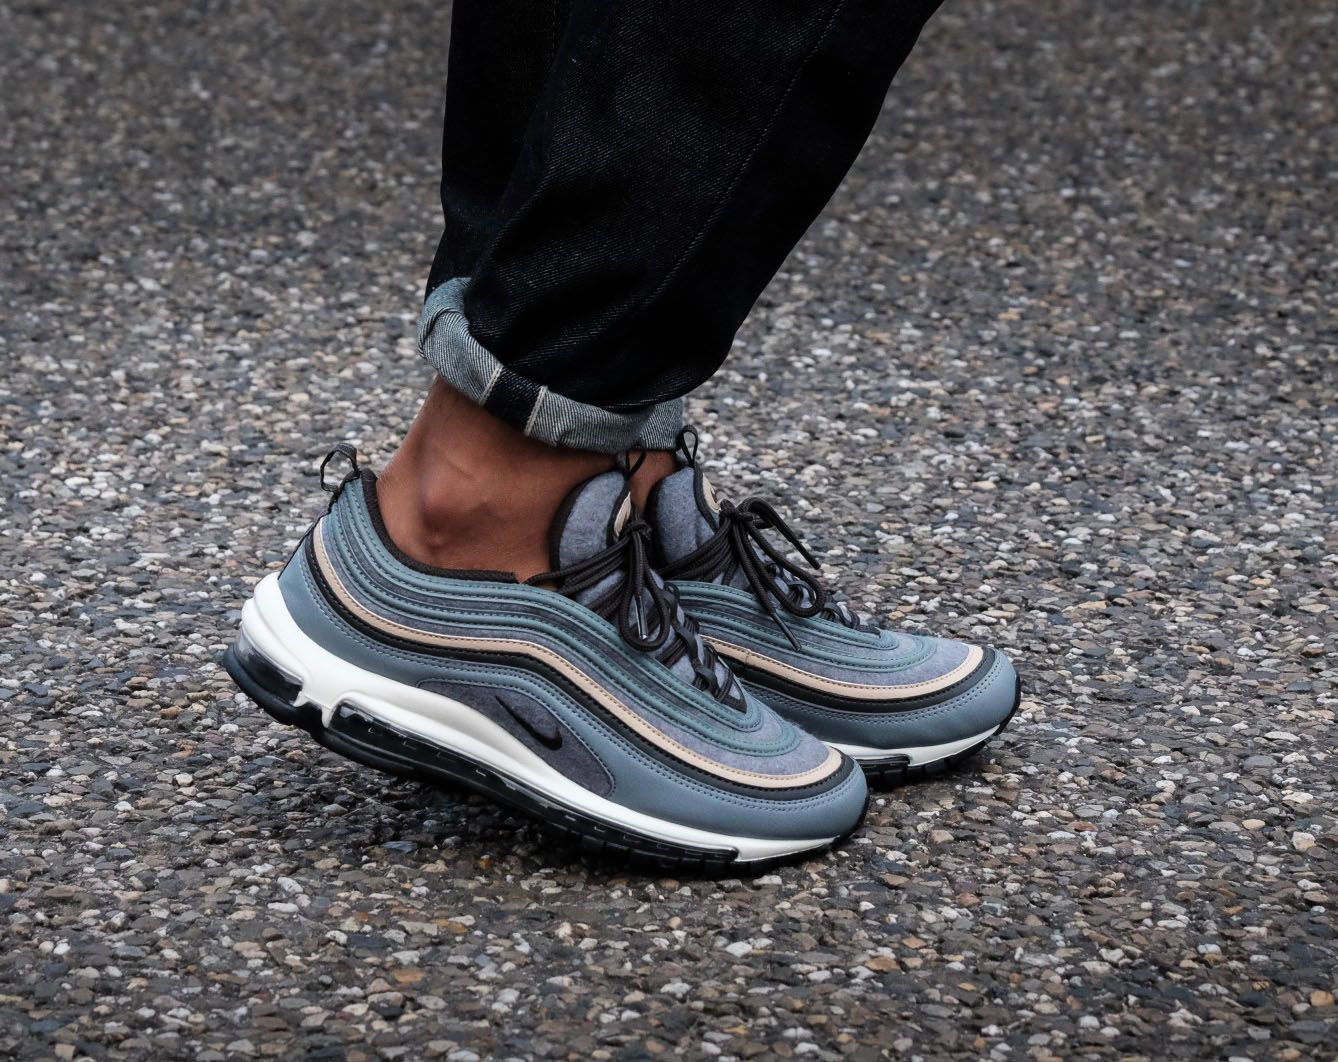 Nike Air Max 97 Premium Deep Pewter On Feet HYPEBEAST  HYPEBEAST